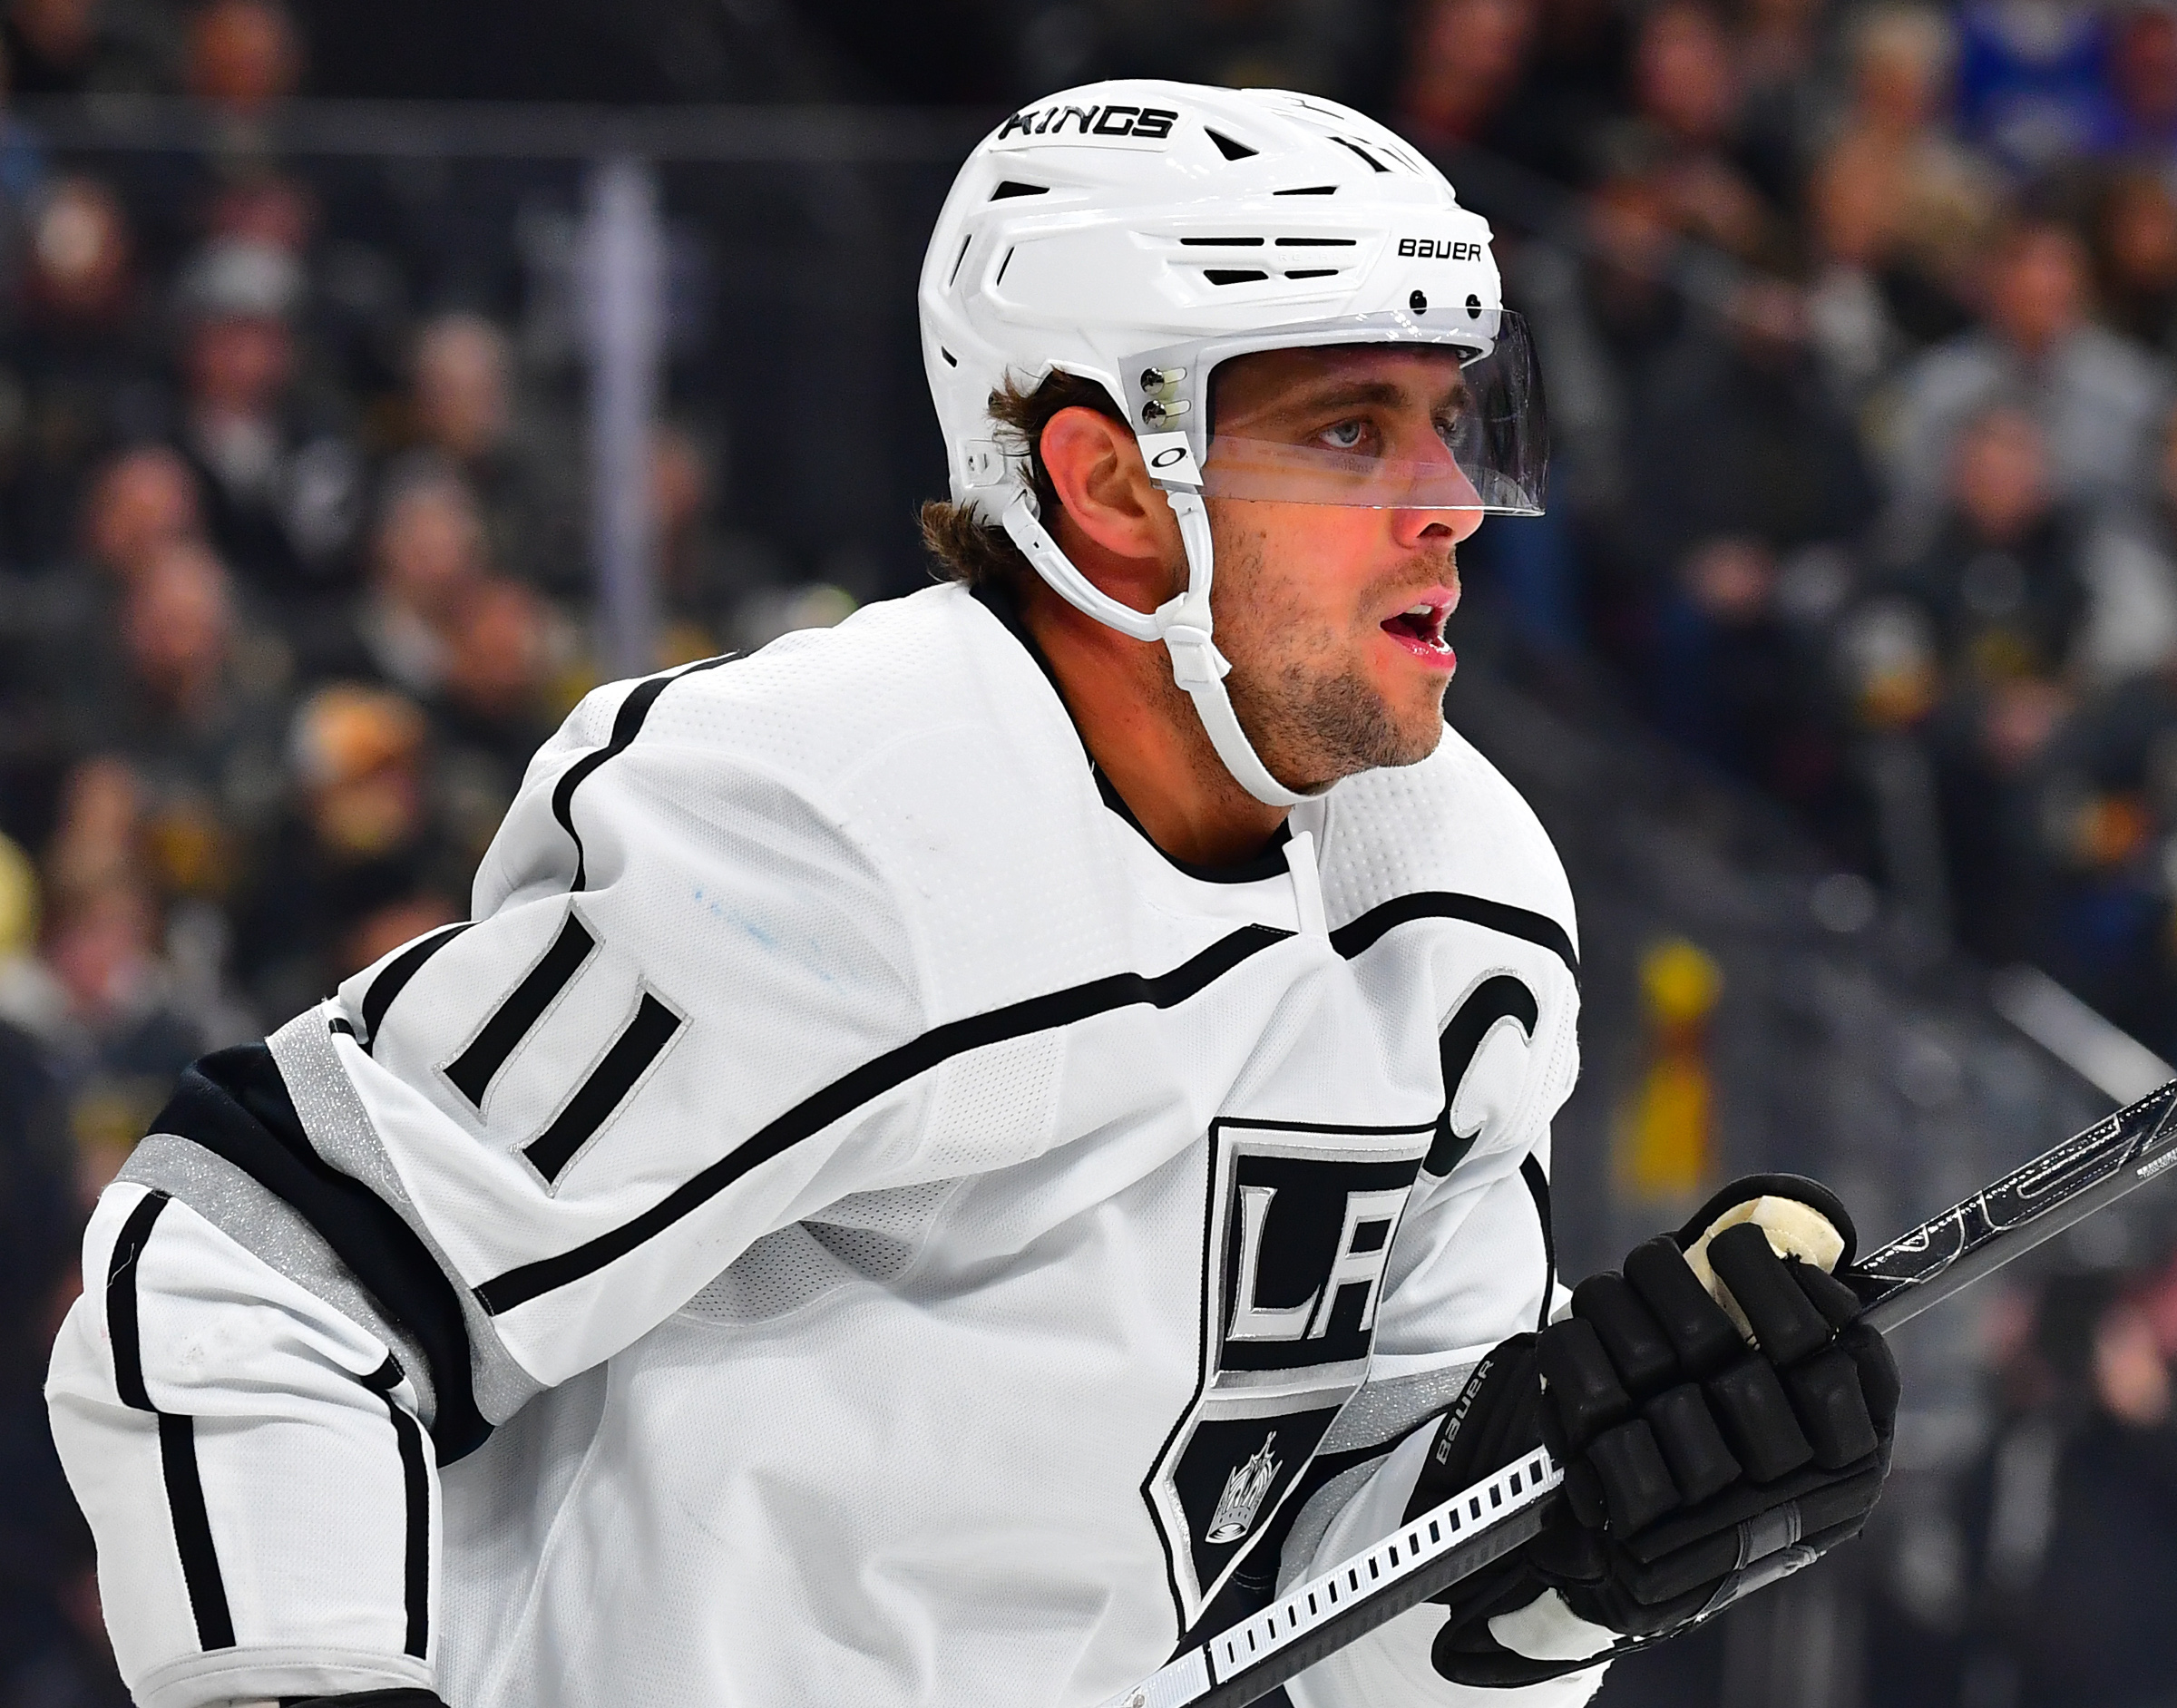 The Los Angeles Kings are the hottest team heading into the Coronavirus pause